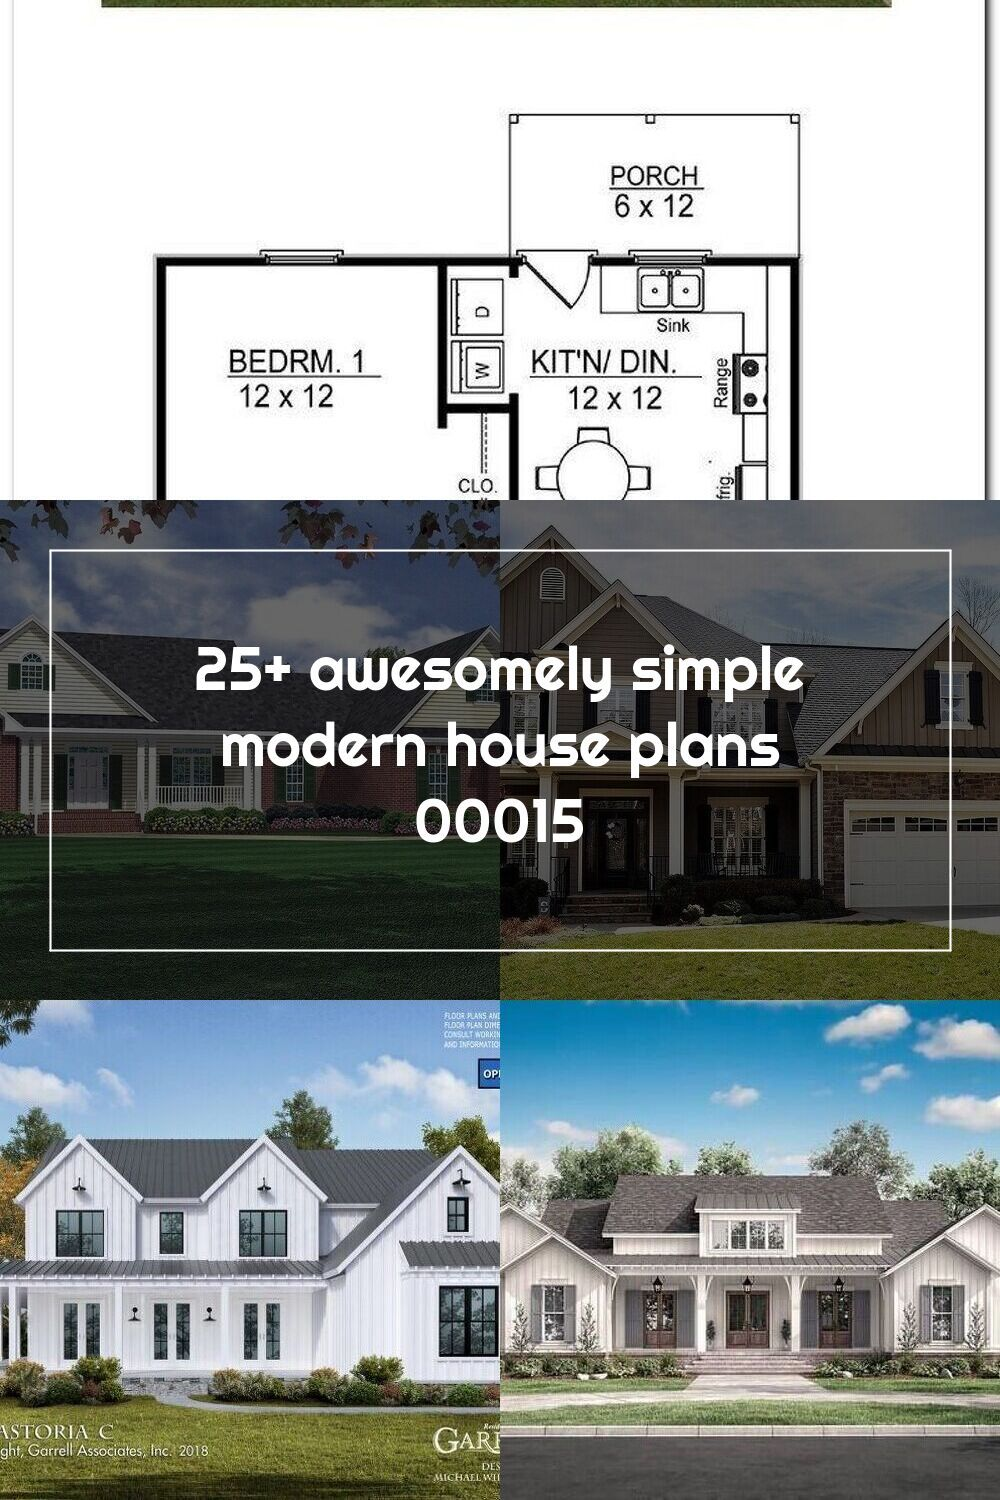 25 Awesomely Simple Modern House Plans 00015 Modern House Plans Traditional House Plans Modern House